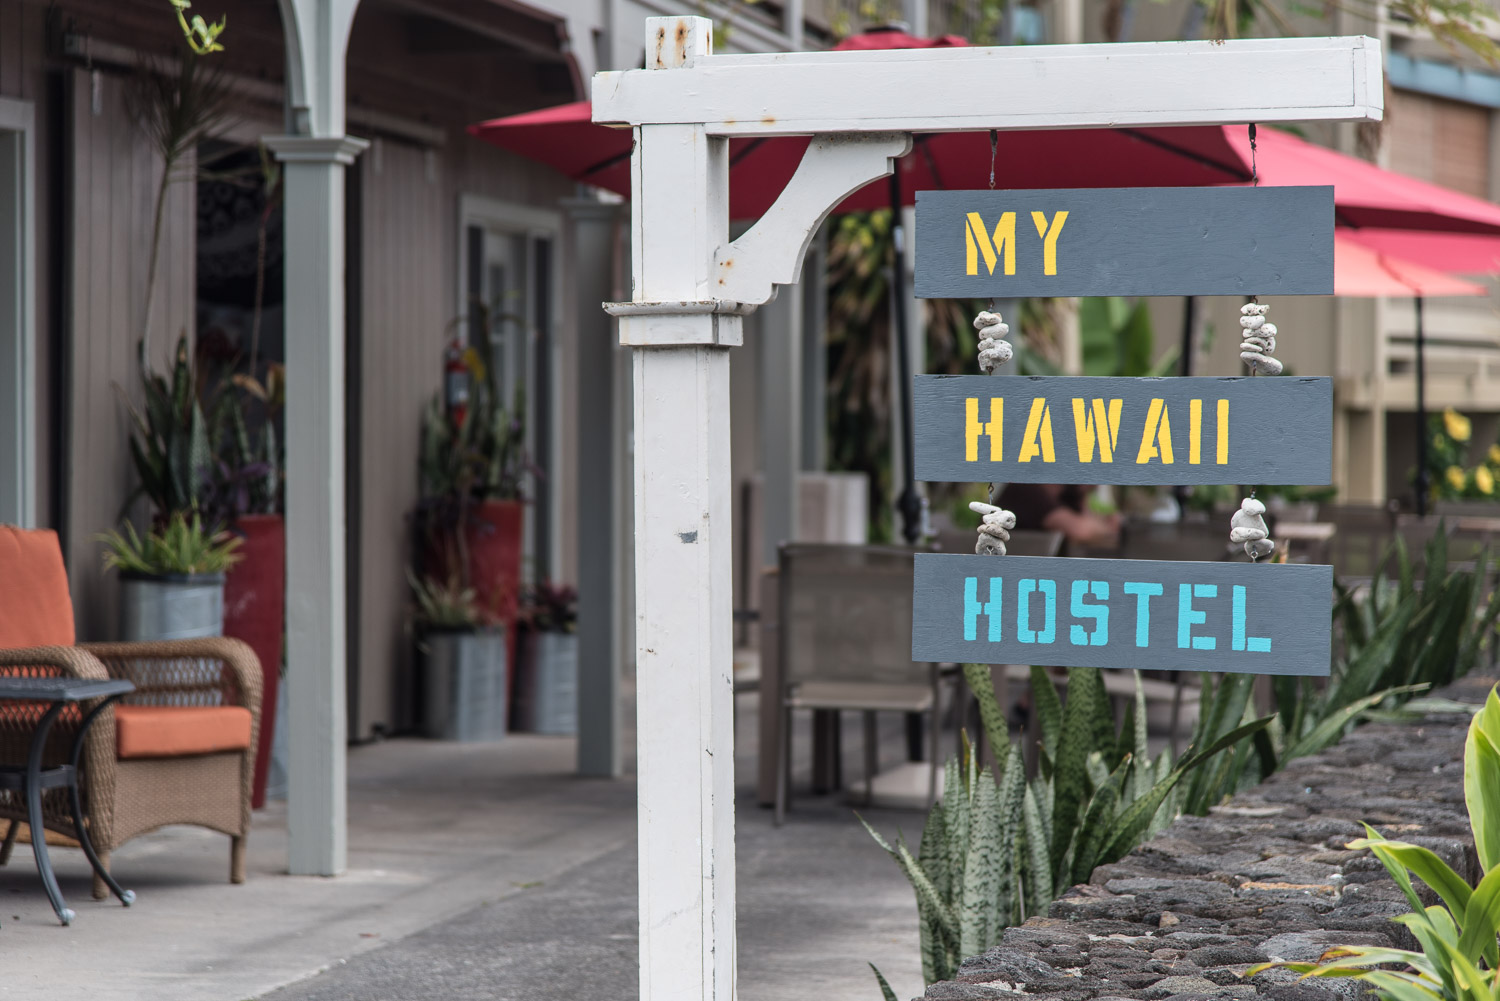 My Hawaii Hostel 2016-34.jpg